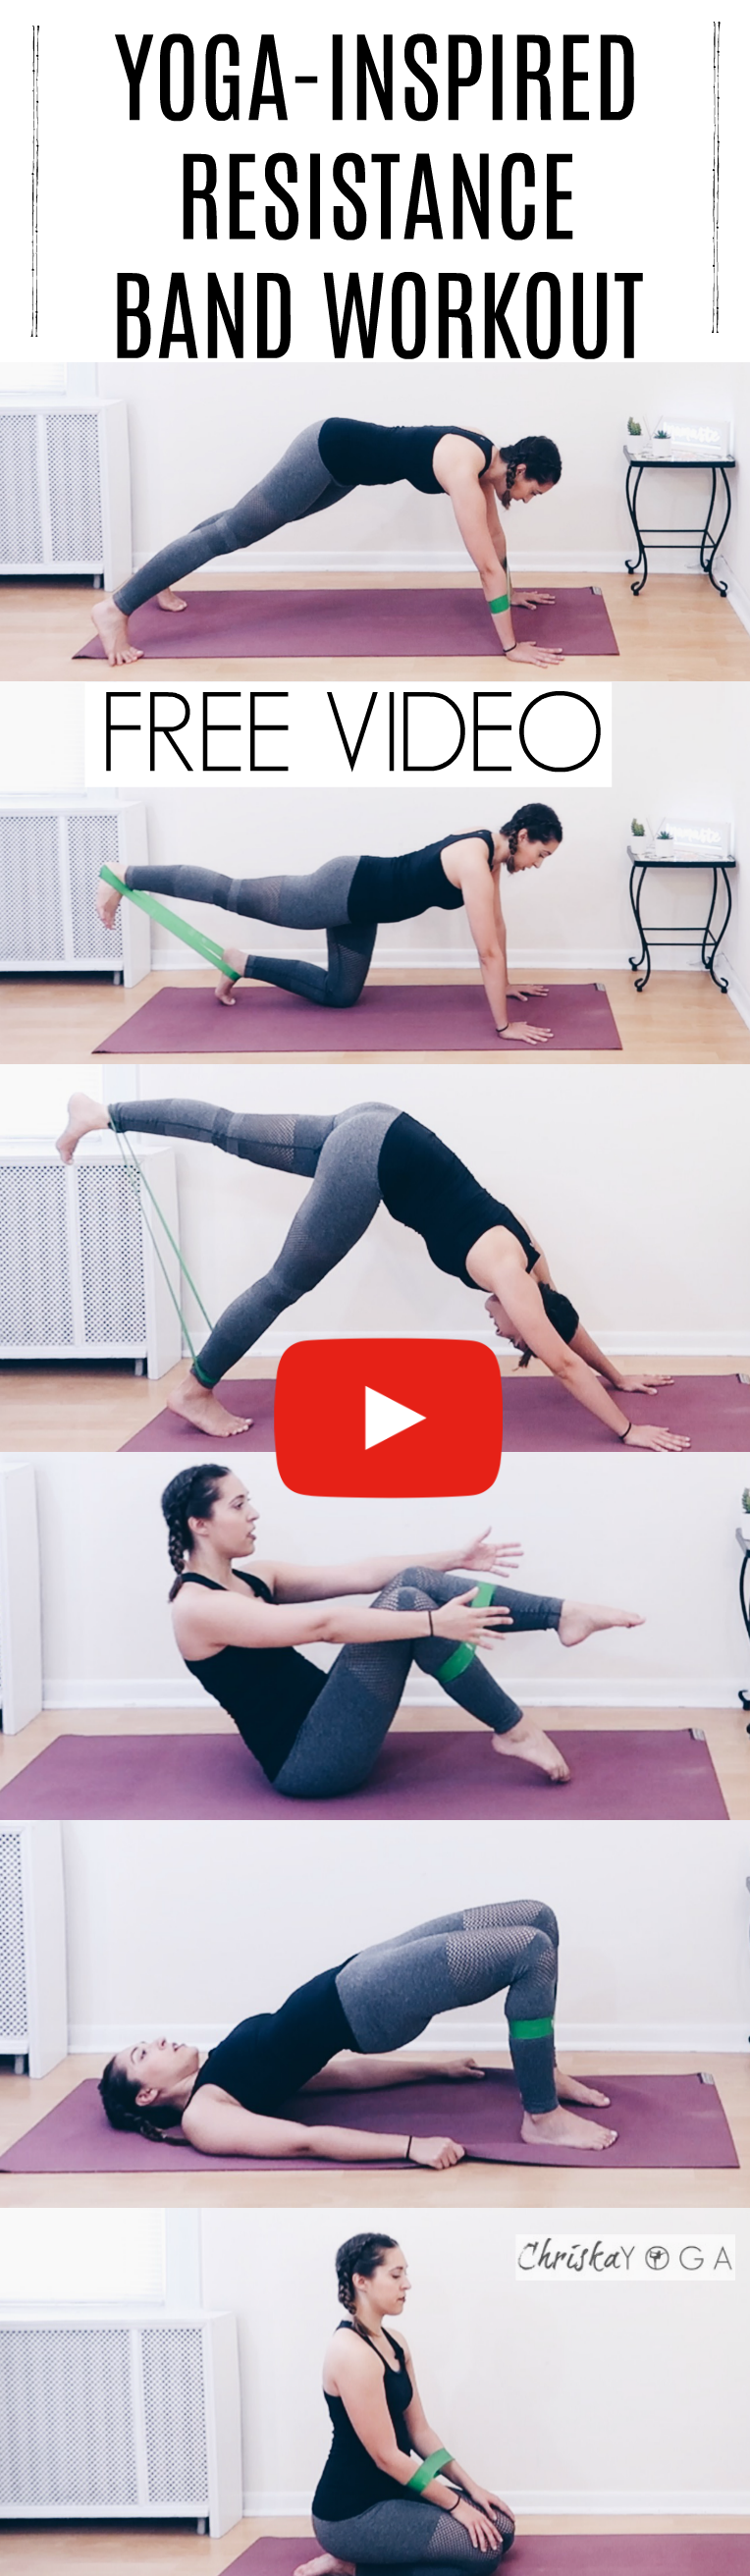 20 Minute Yoga Workout With A Resistance Band